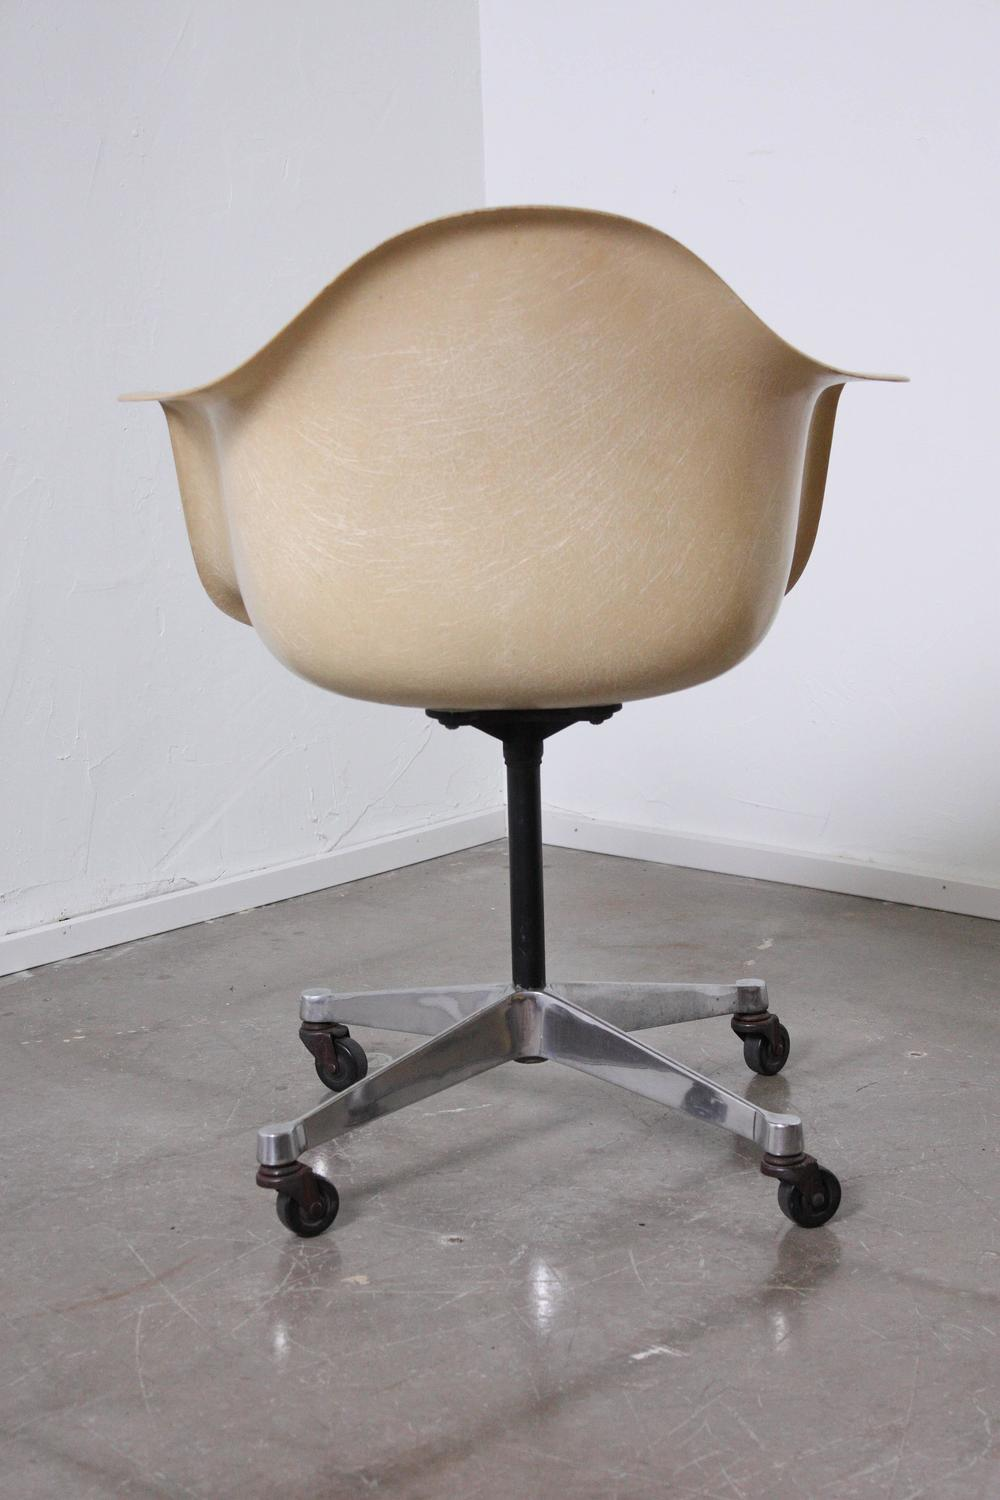 Fantastisch Fiberglass Shell Chair By Charles And Ray Eames At 1stdibs